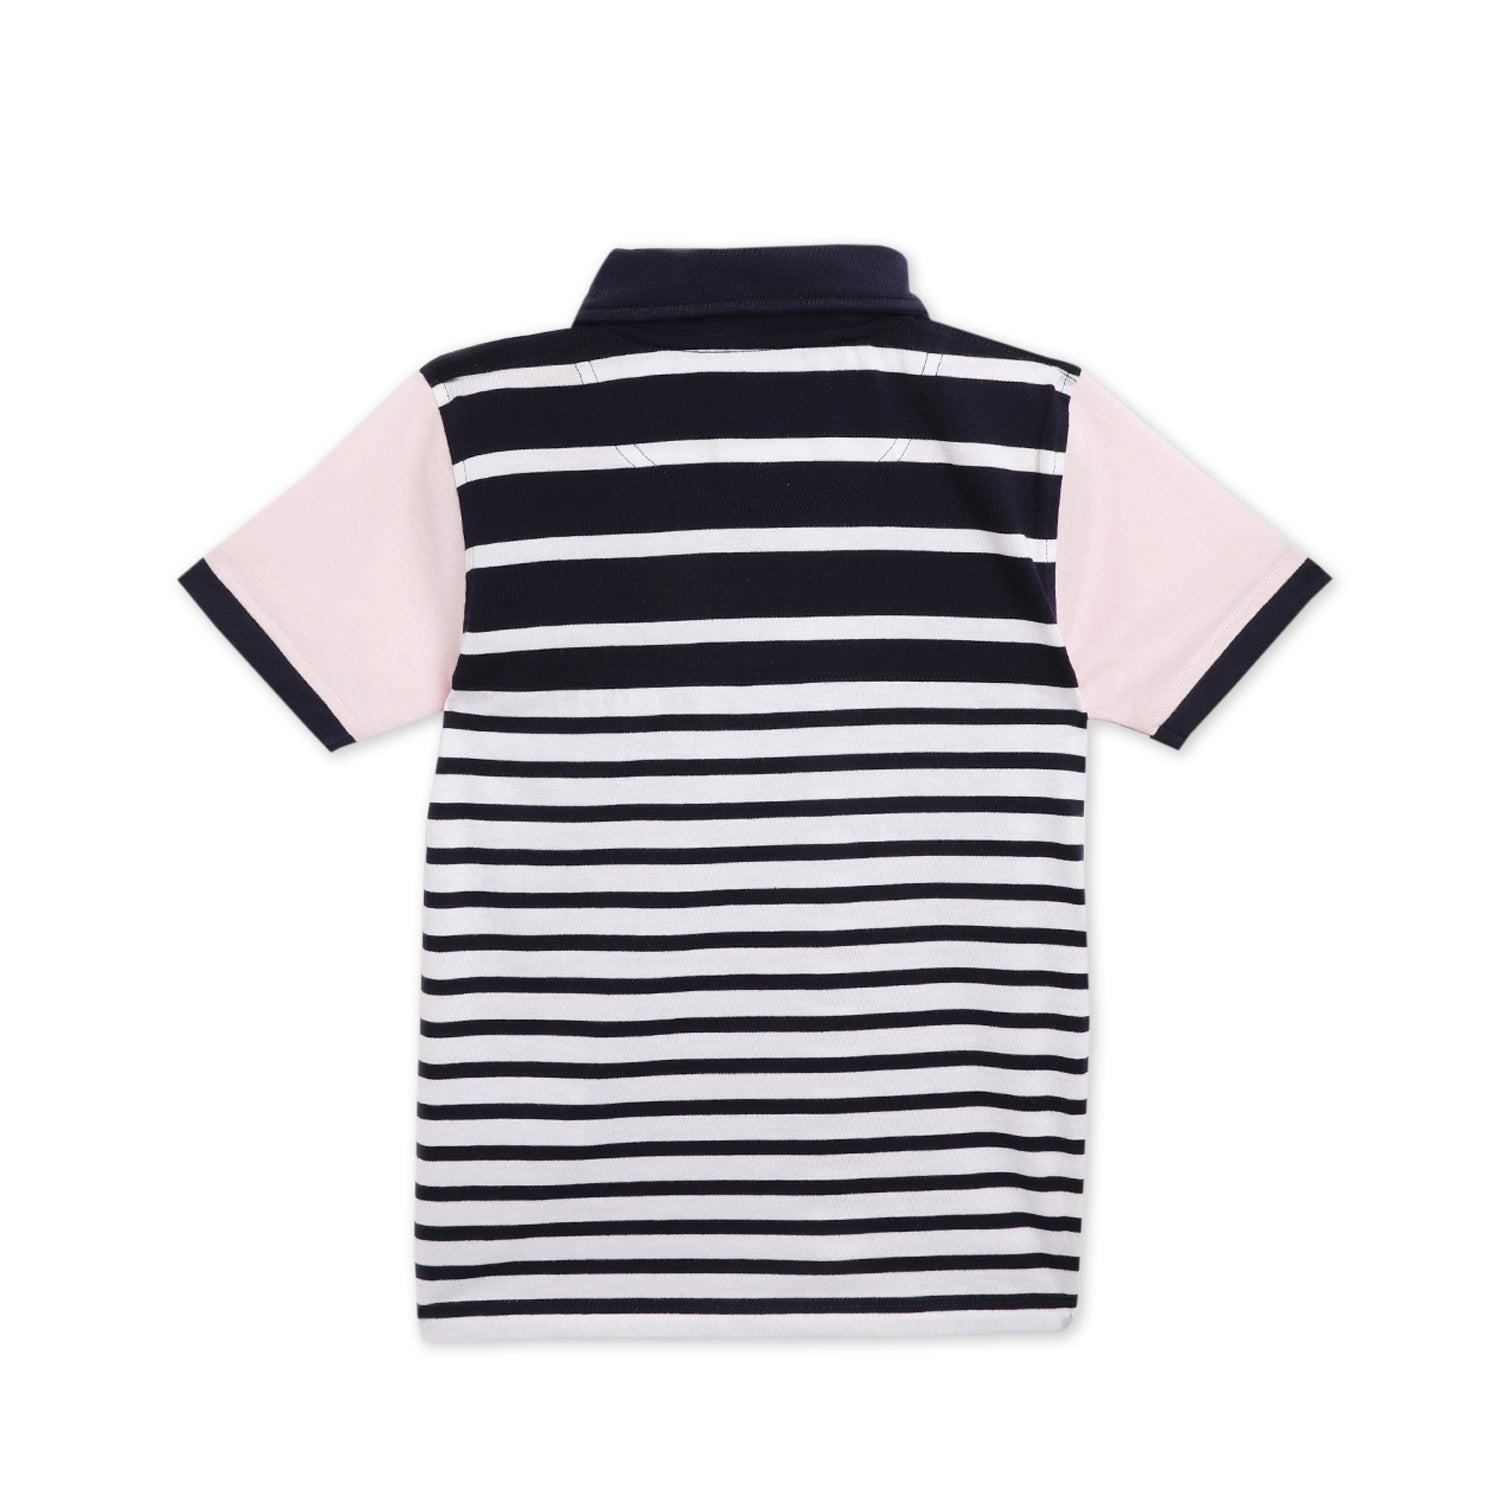 kids-regular striped polo tshirt-ws-hpolo-6148nblu